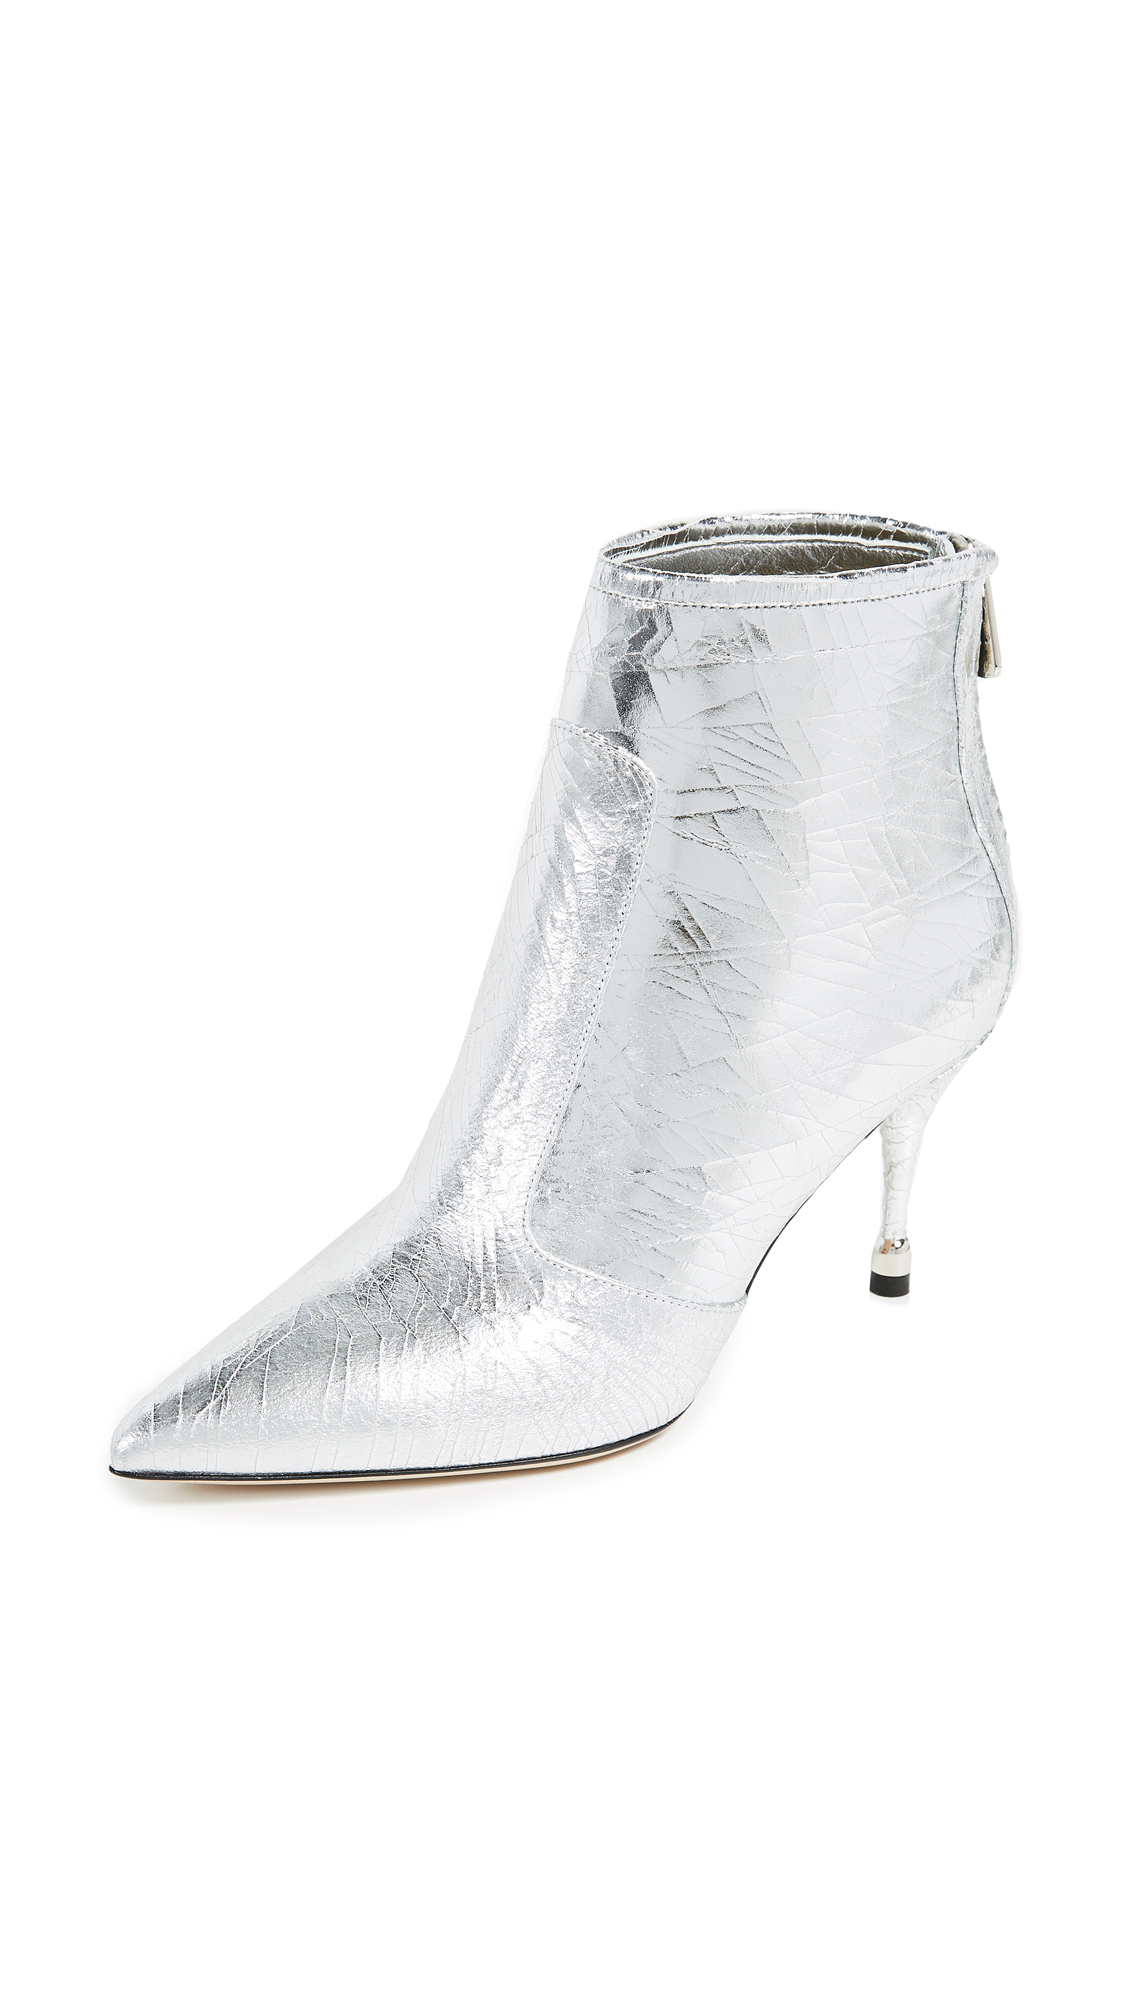 Paul Andrew Citra 75mm Booties - Silver